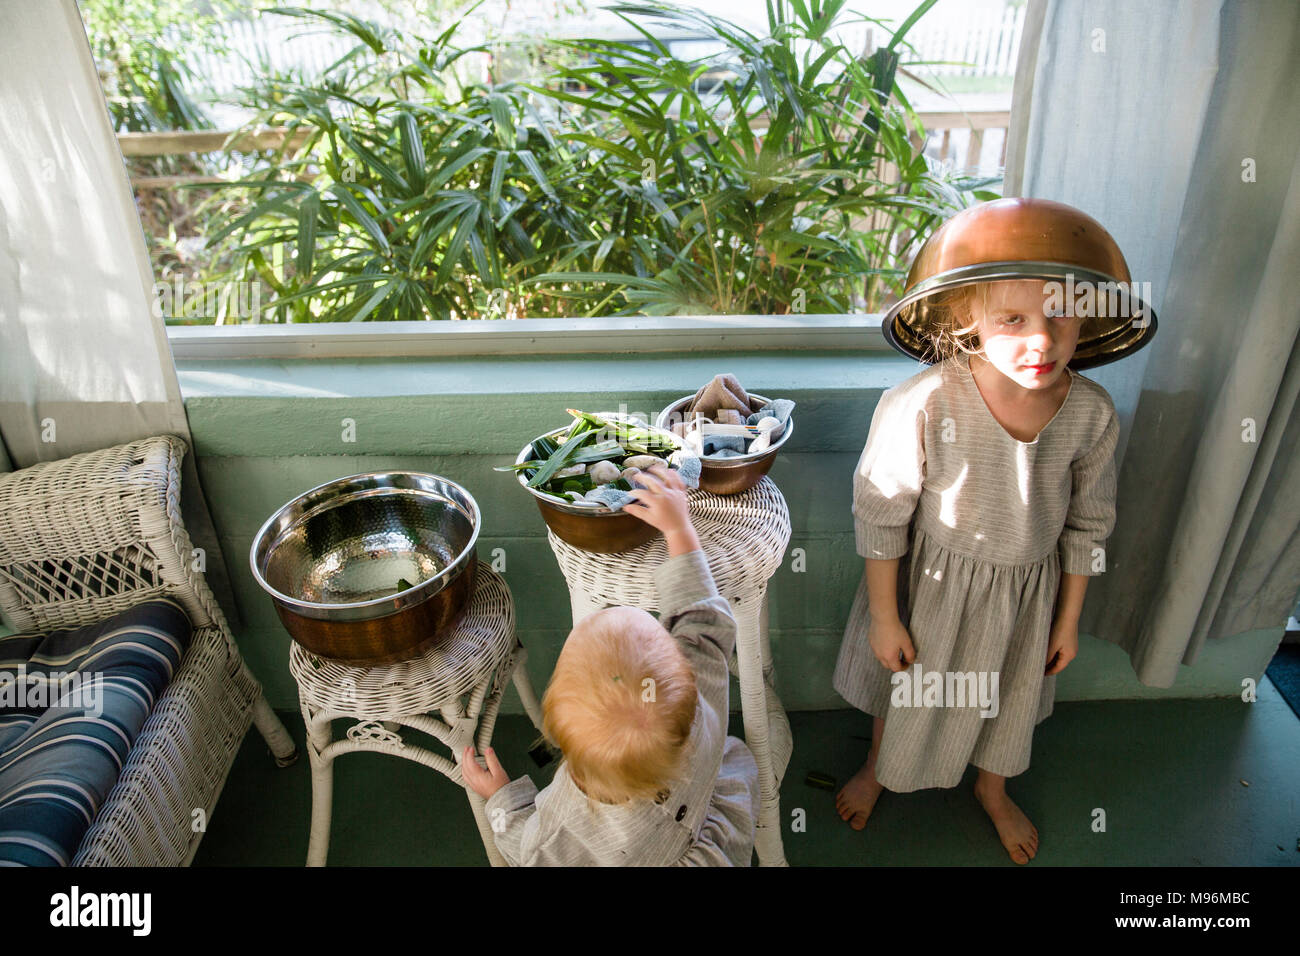 Girl with bowl on head in home - Stock Image